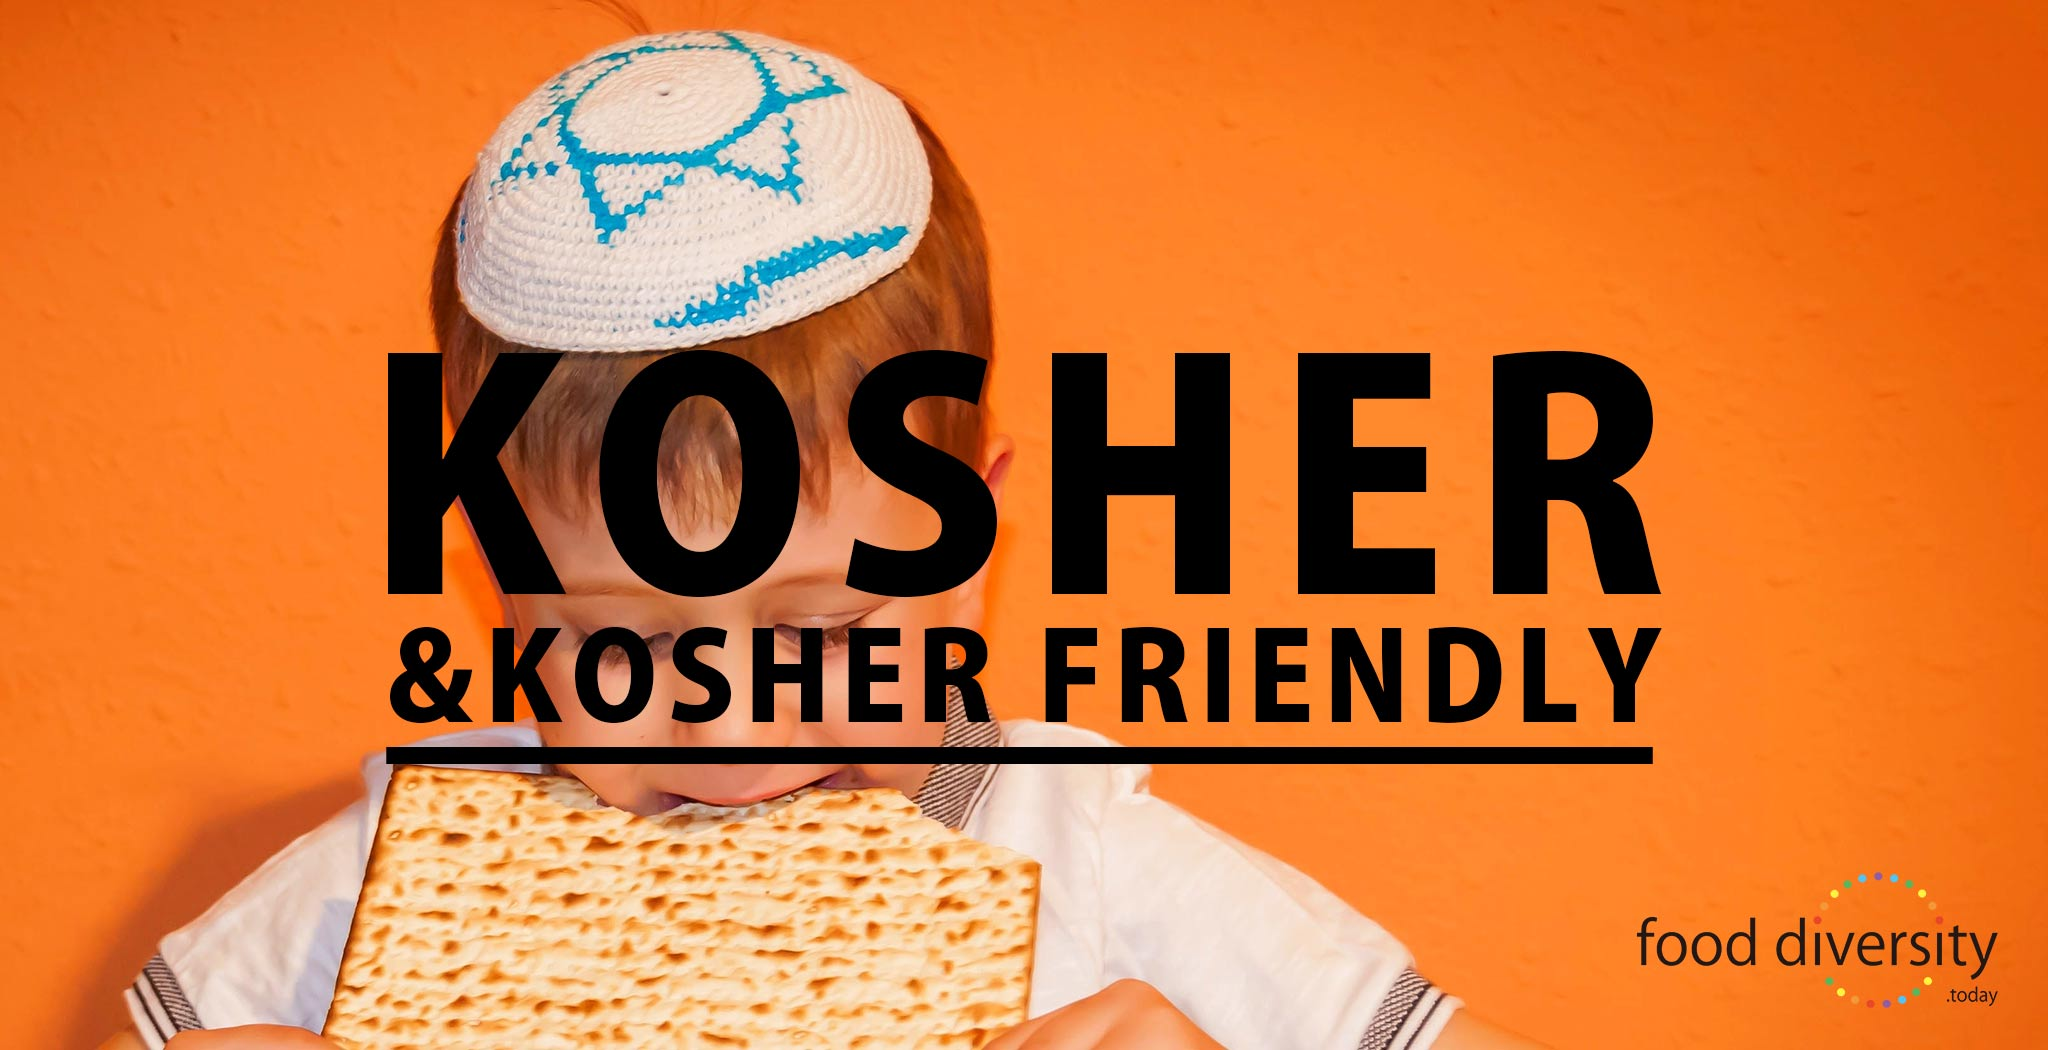 food diversity.today KOSHER